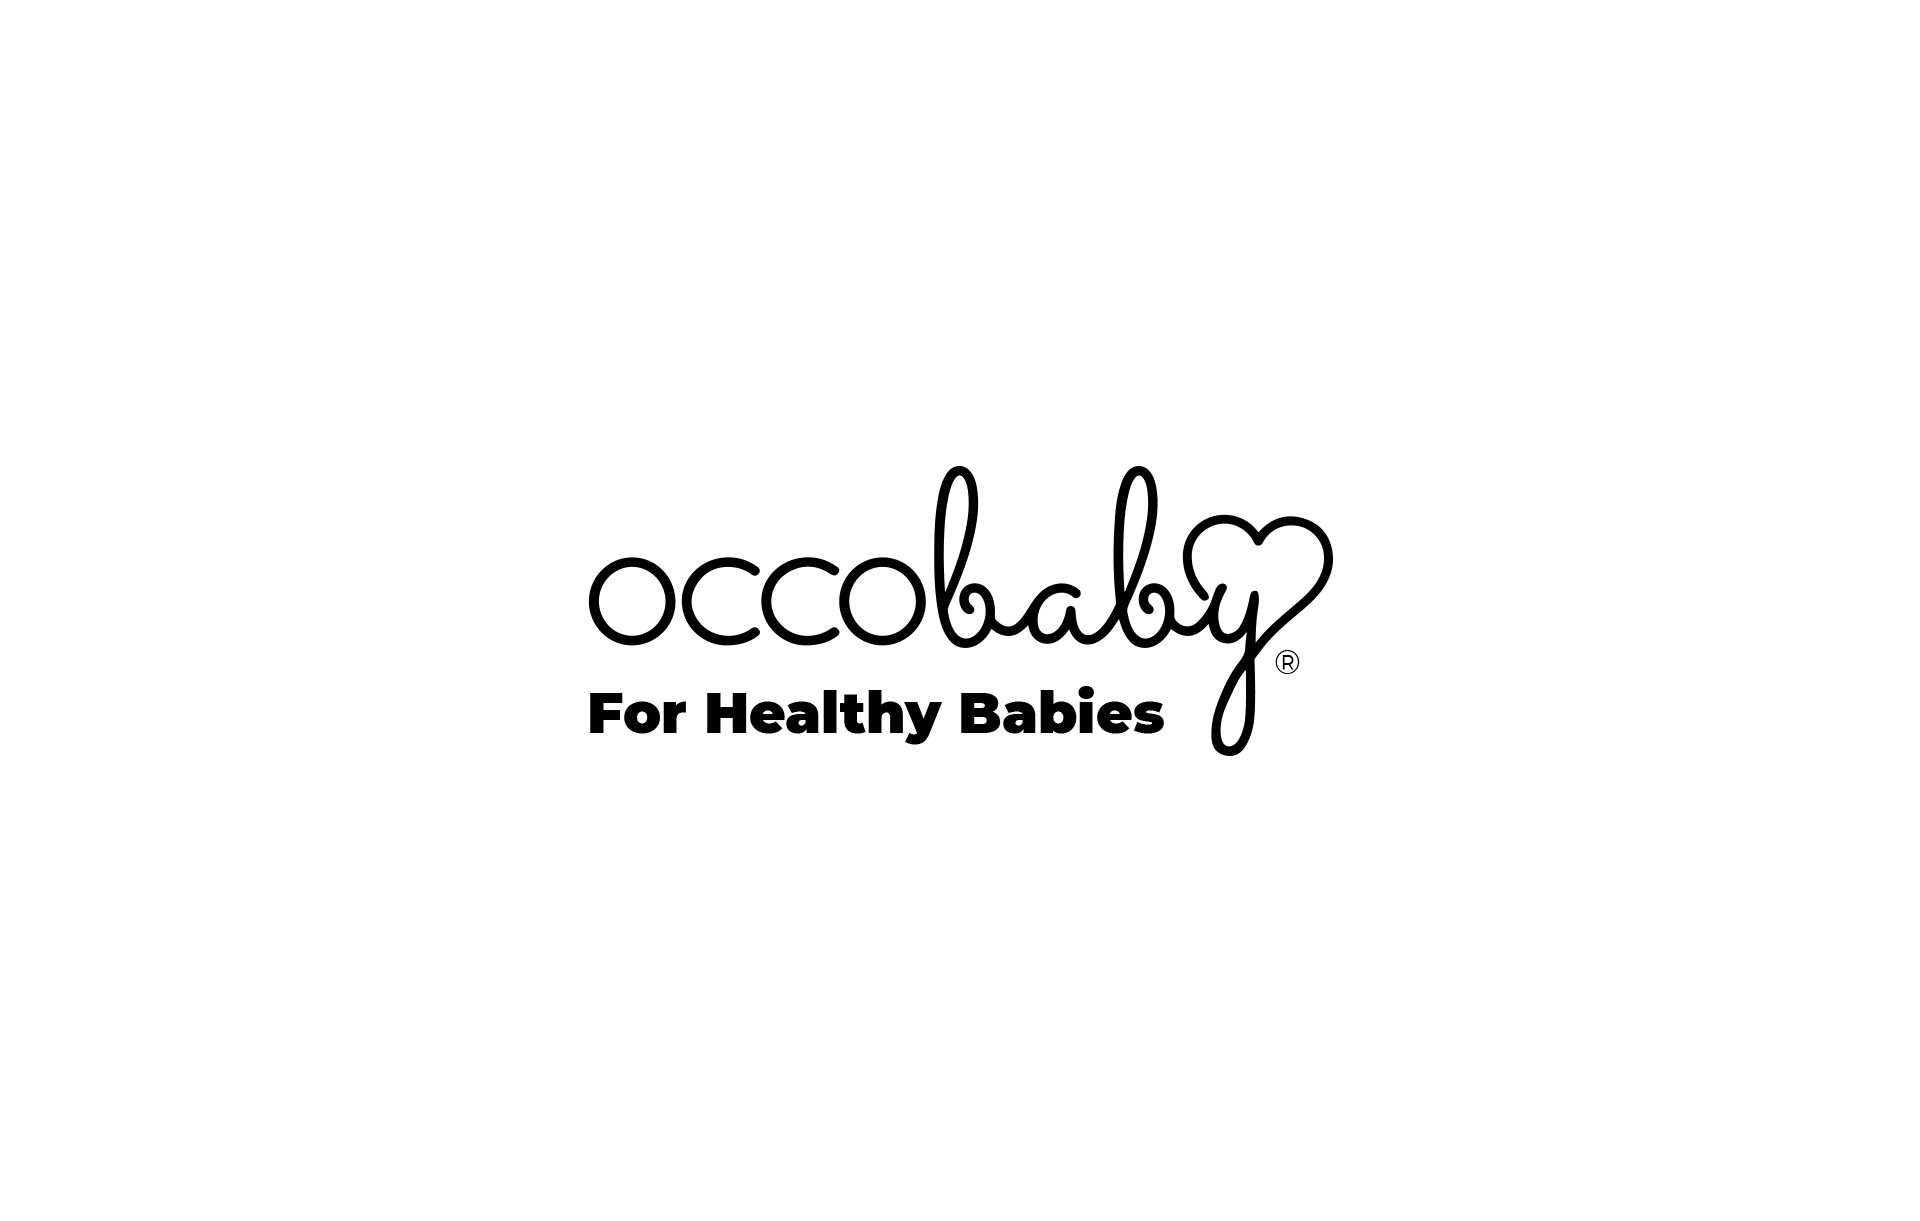 OCCOBaby Logo Design By Scott Luscombe